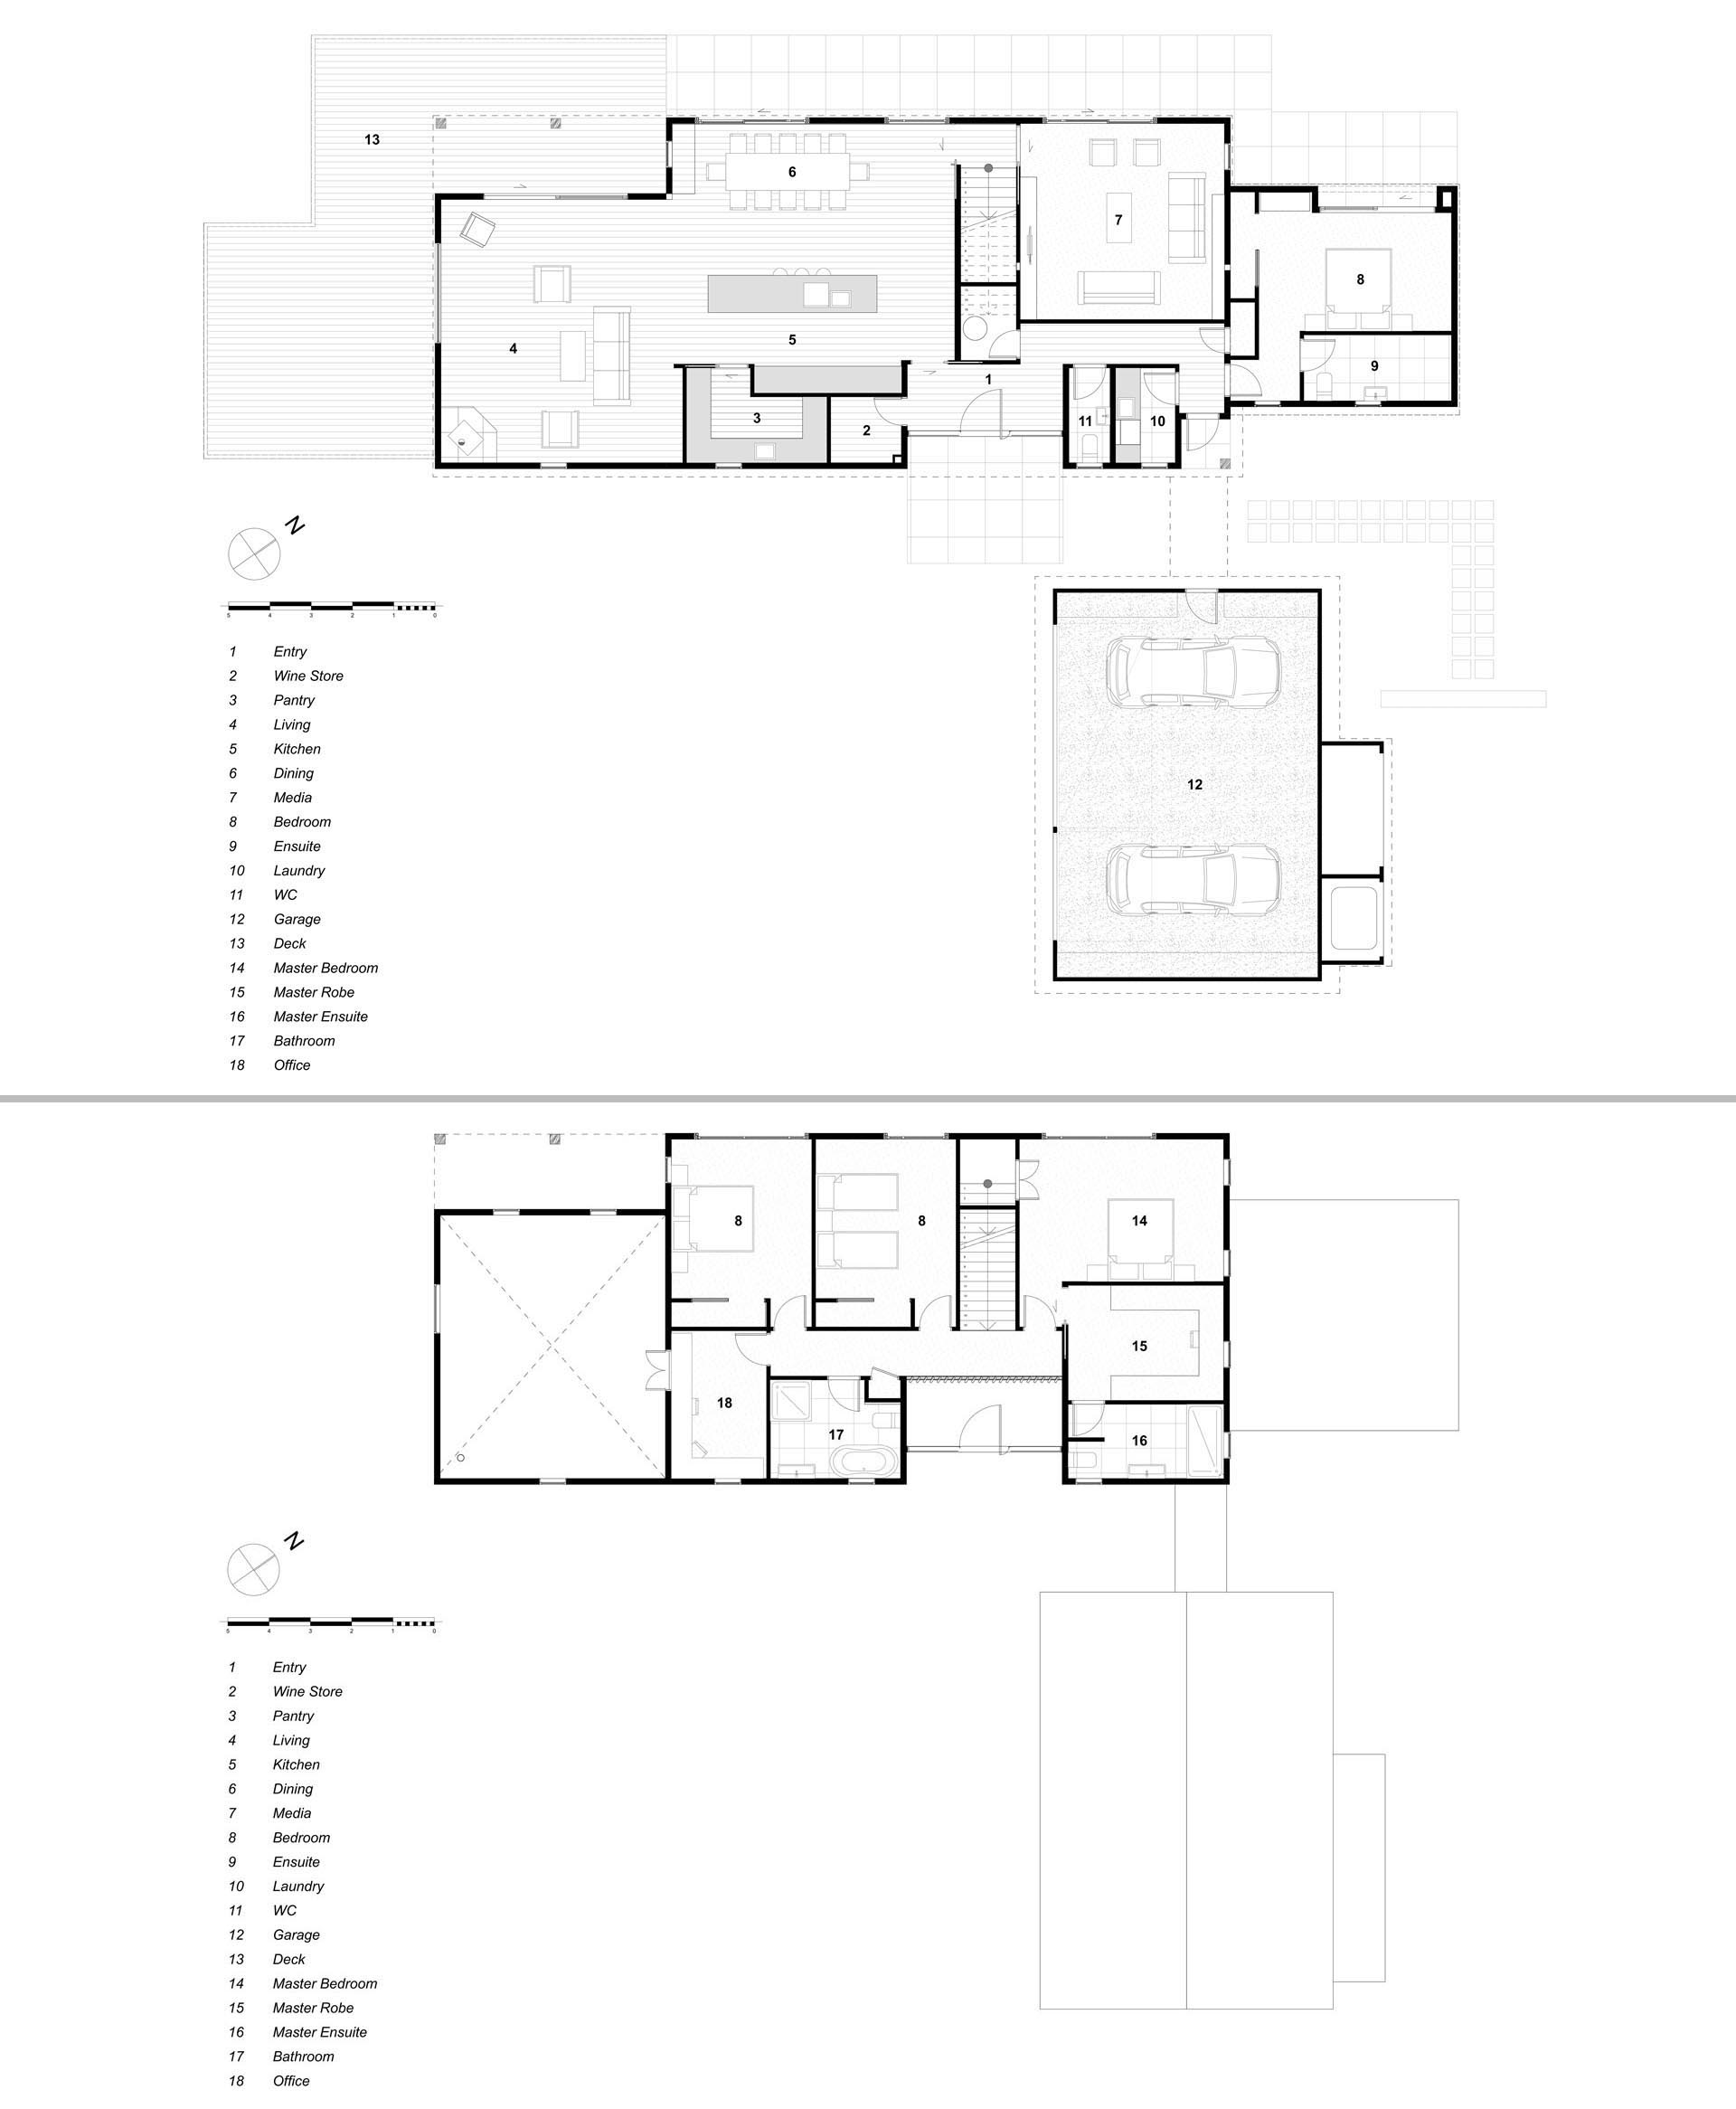 The floor plan of a contemporary barn-inspired home that has an exterior of pale timber tones, a sloped metal roof, and a shiplap ceiling.